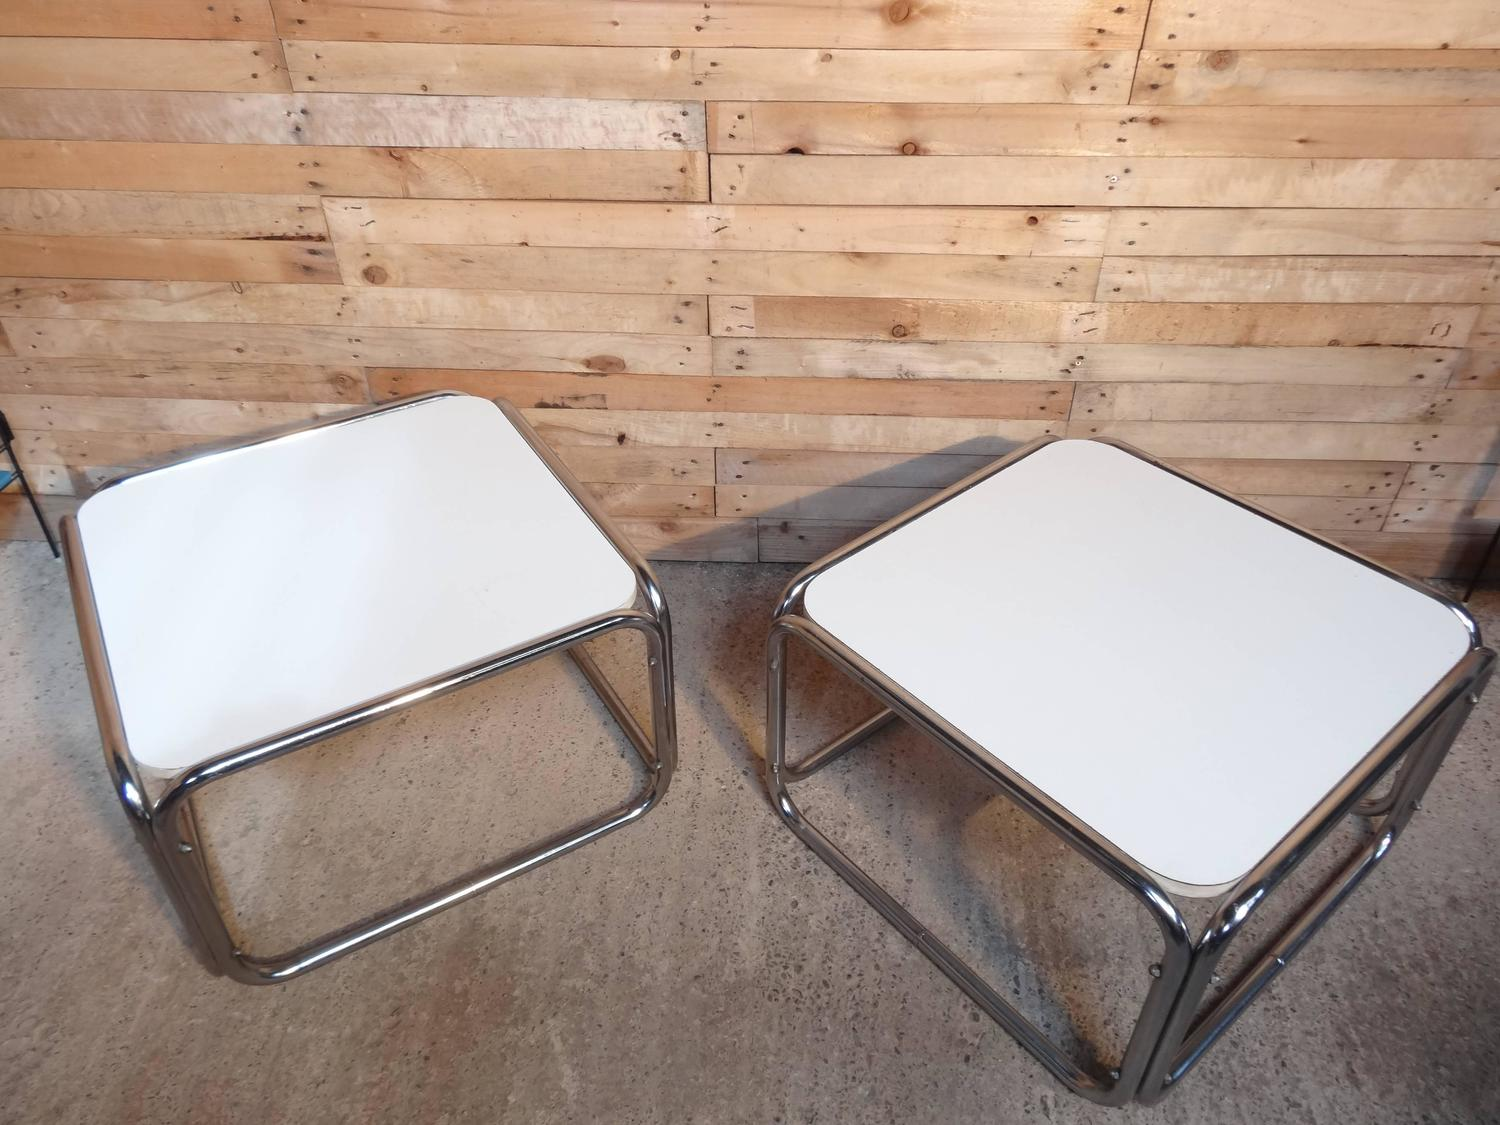 1960s Chrome White Cube Coffee Tables Only 1 Available For Sale At 1stdibs